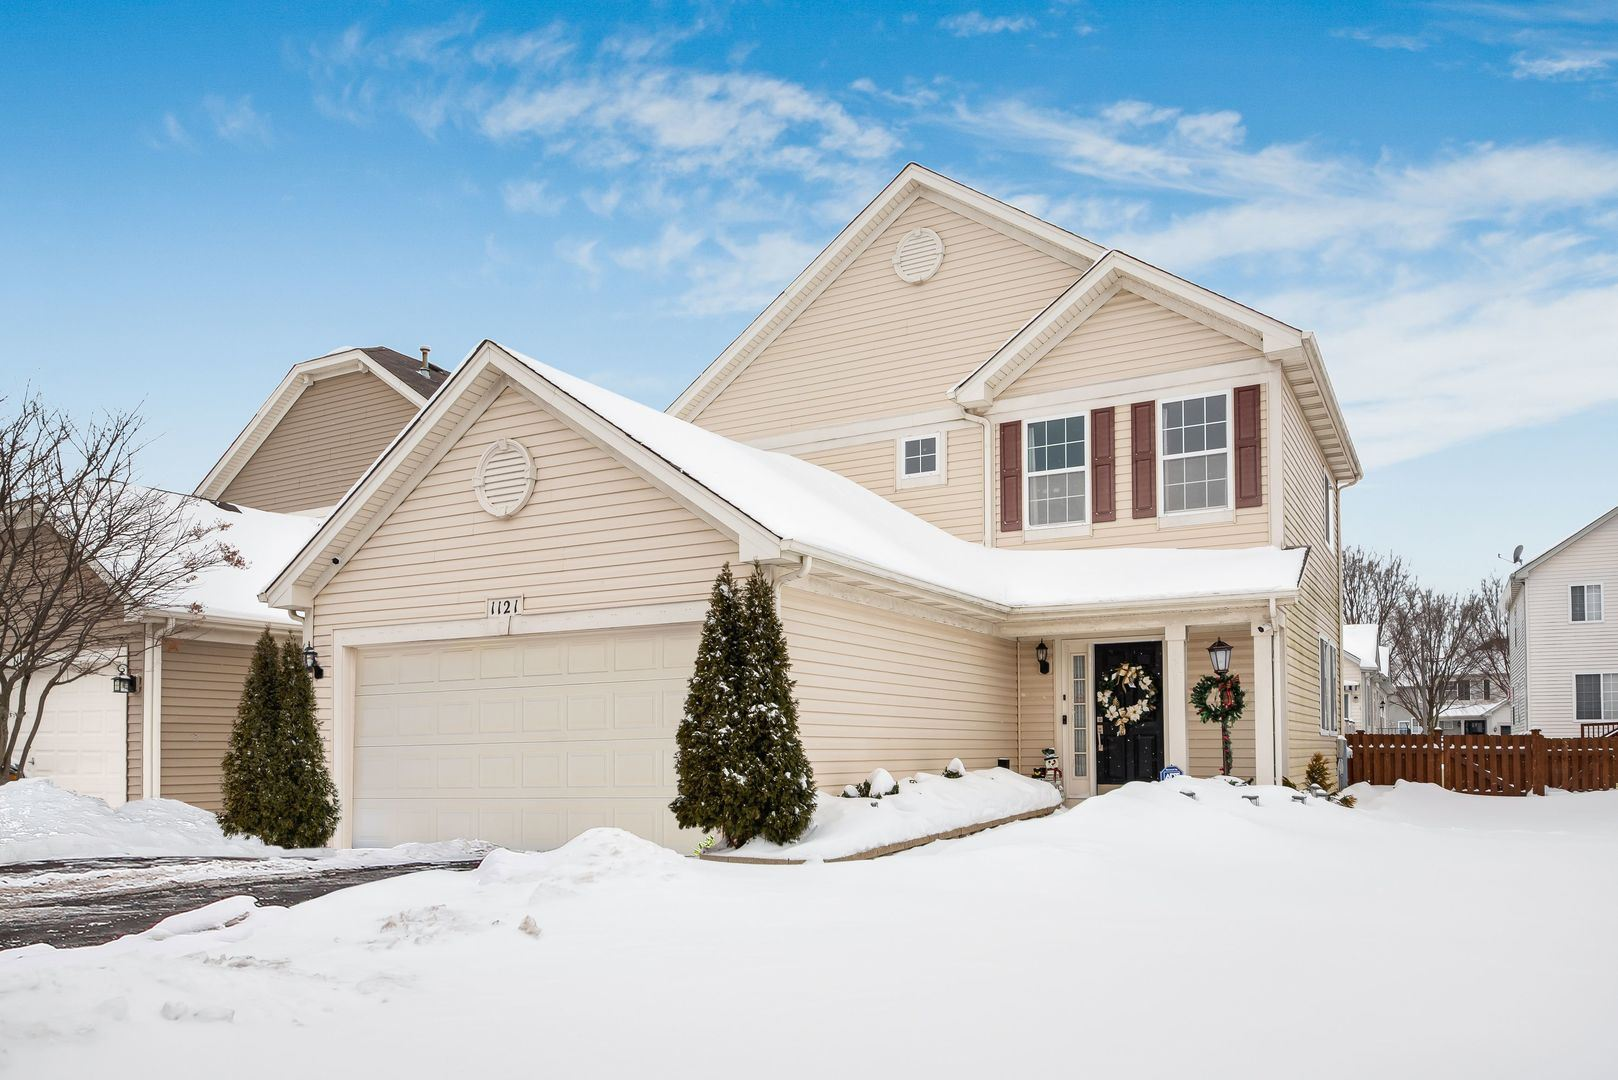 Photo of 1121 FAWNLILY Circle, Joliet, IL 60431 (MLS # 10997609)